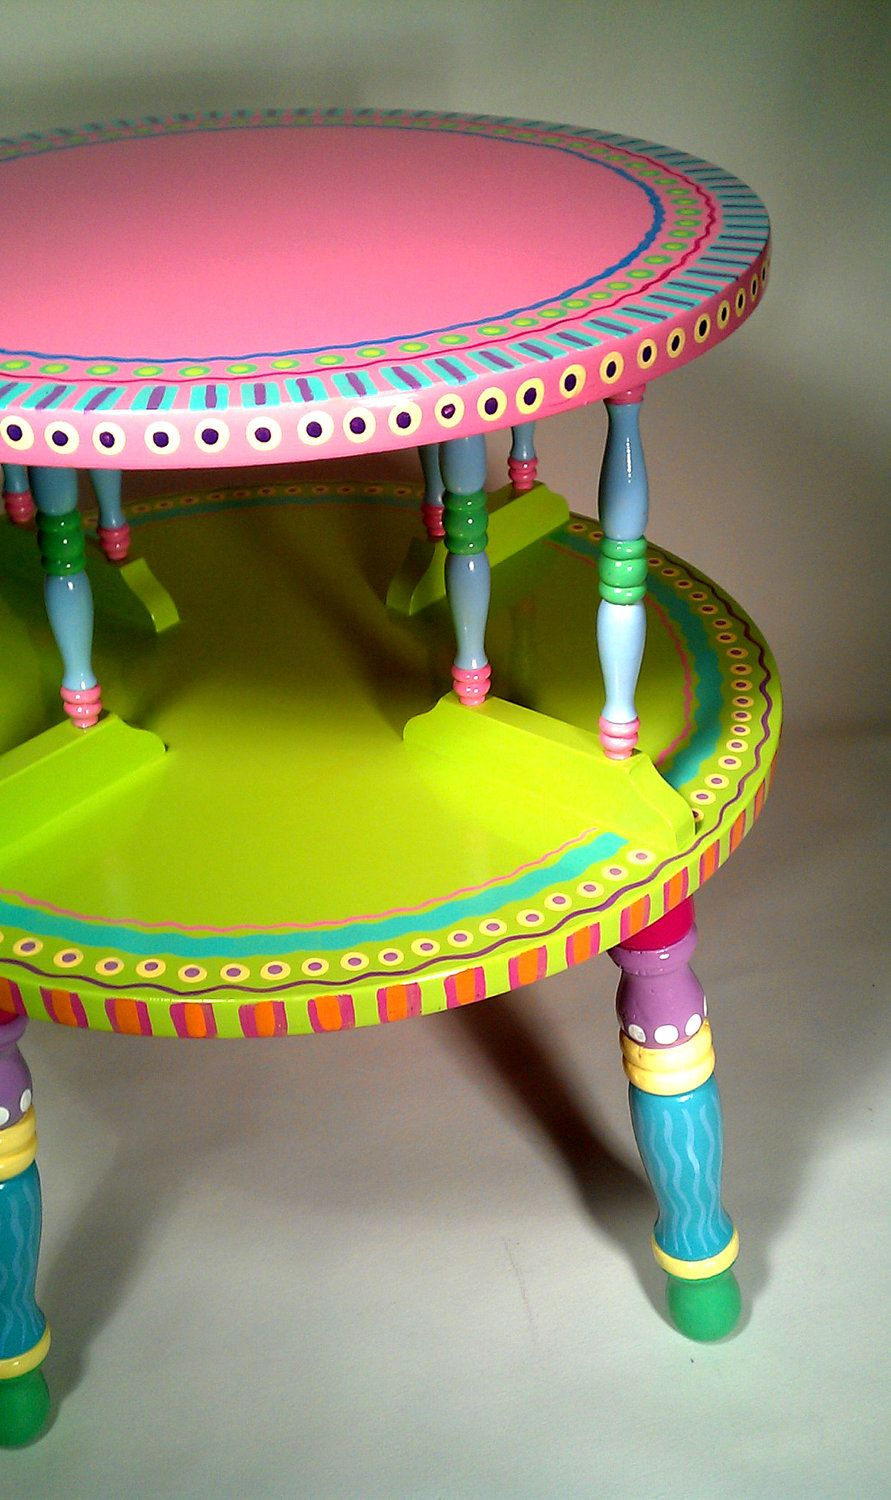 sold sample of custom work- side table- hand painted furniture